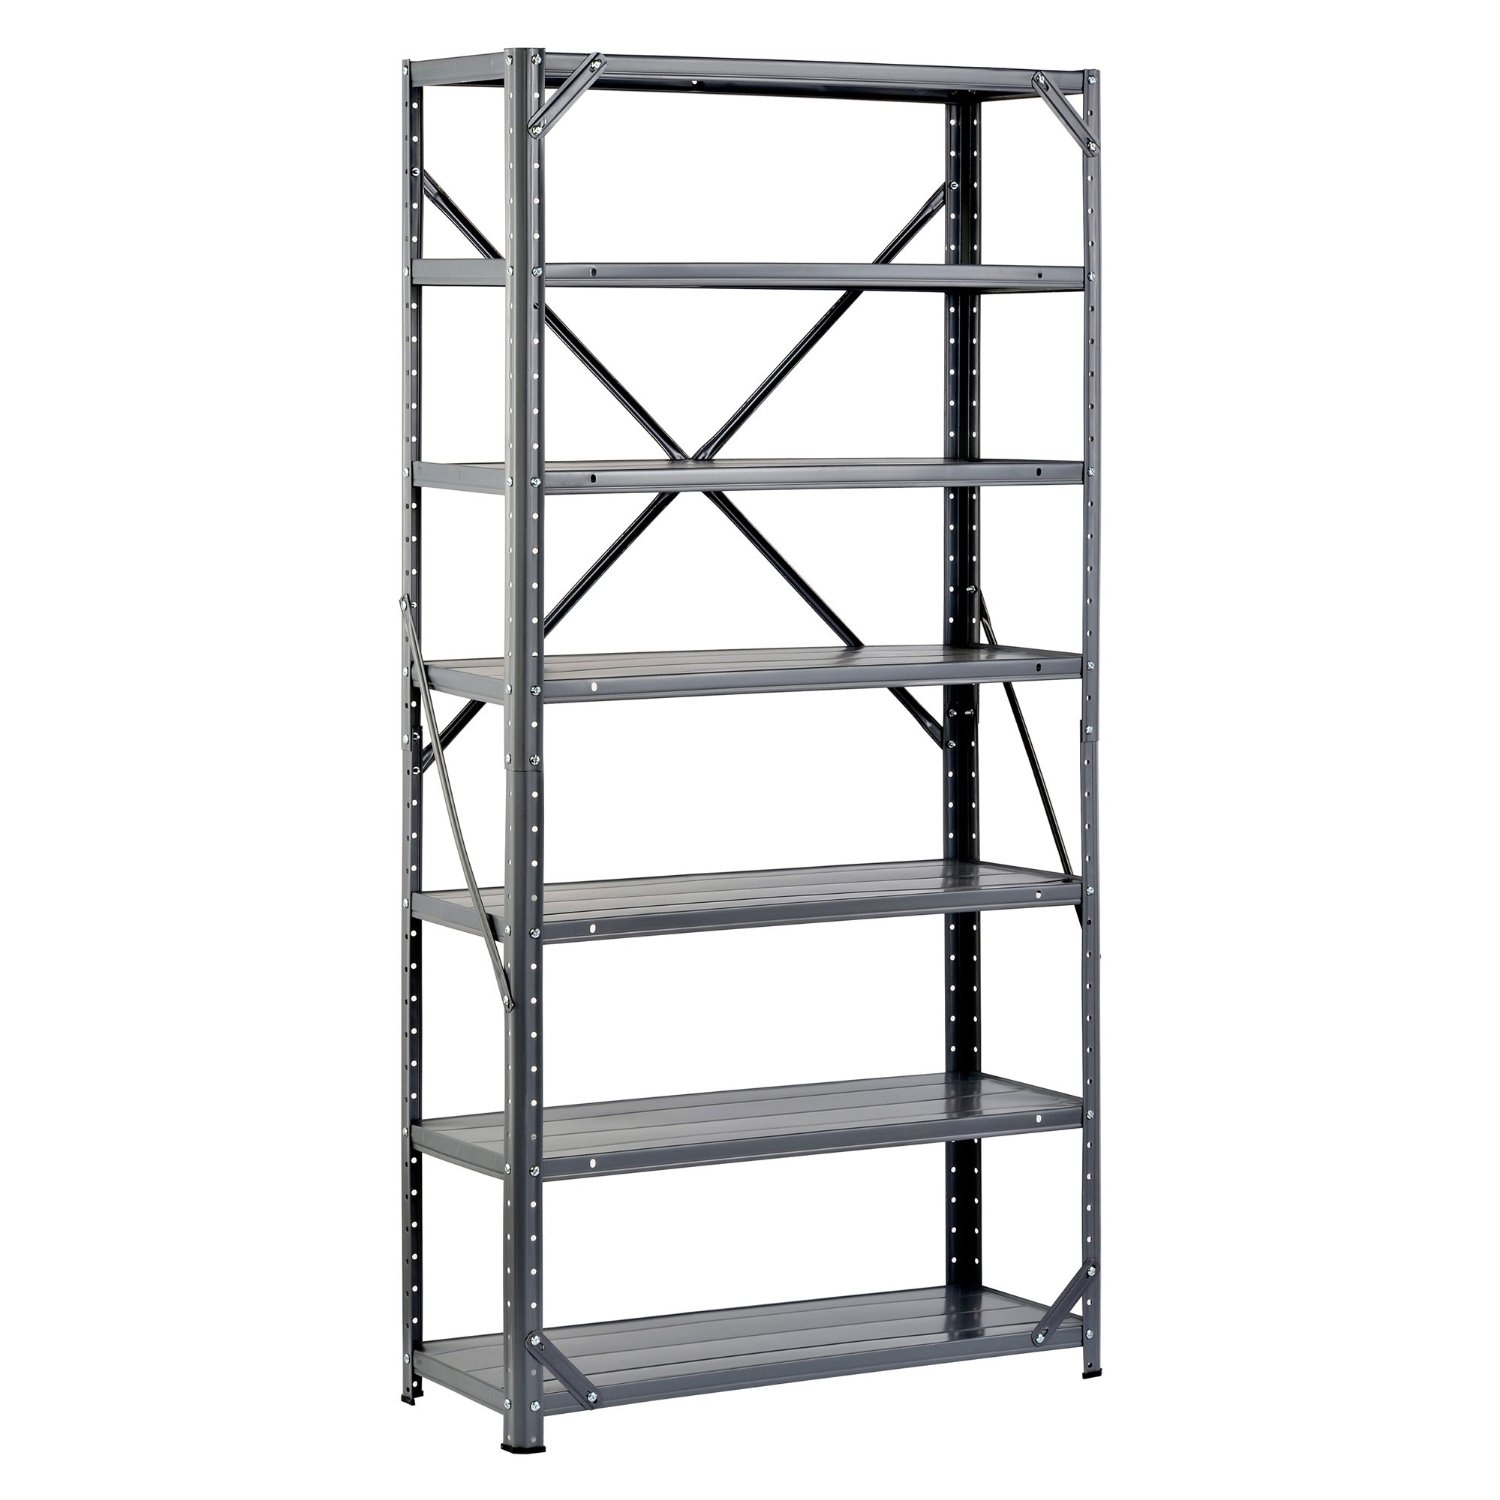 """7-Shelf Steel Metal Storage System - 750 lb Capacity, E7SM29661 :  This 7-Shelf Steel Metal Storage System  - 750 lb Capacity is made of steel to support a 107-lb. per shelf capacity and to support a 750-lb. total capacity when the weight is distributed evenly across all shelves. This unit has lipped shelves that can be installed with the lip facing downwards to create a flat surface for storage, or it can be installed with the lip facing upwards to create a tray with shallow edges for holding cans, books, and similar items. The corner post holes on this shelf unit are punched at 1-1/2"""" intervals for precise adjustment to desired shelf height. This unit has cross-braces on the back, and braces on both sides and on the front for rigidity. This shelf unit has a gray enamel finish for corrosion resistance."""